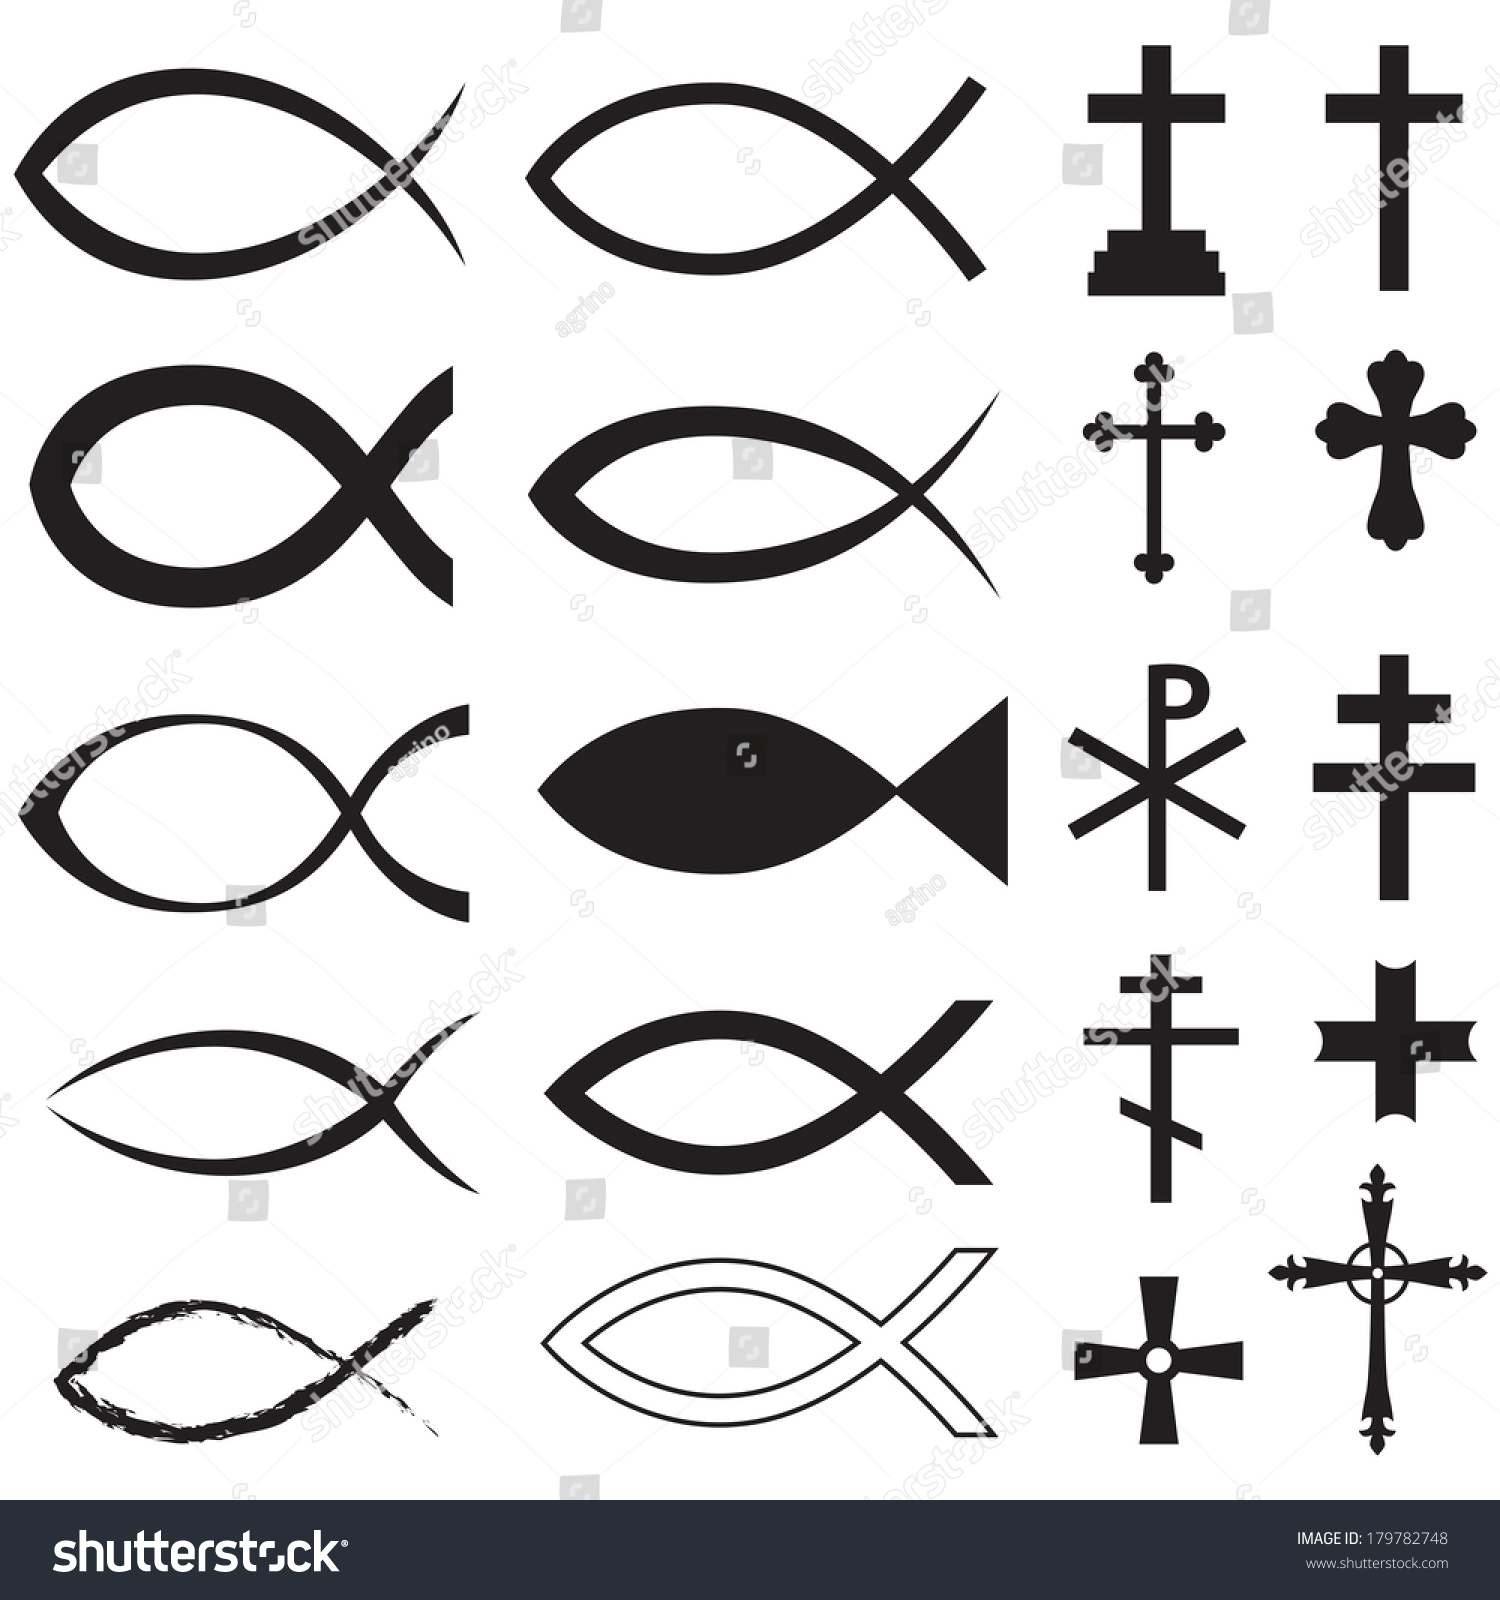 Set christian fish symbol different crosses stock illustration set christian fish symbol and different crosses buycottarizona Gallery